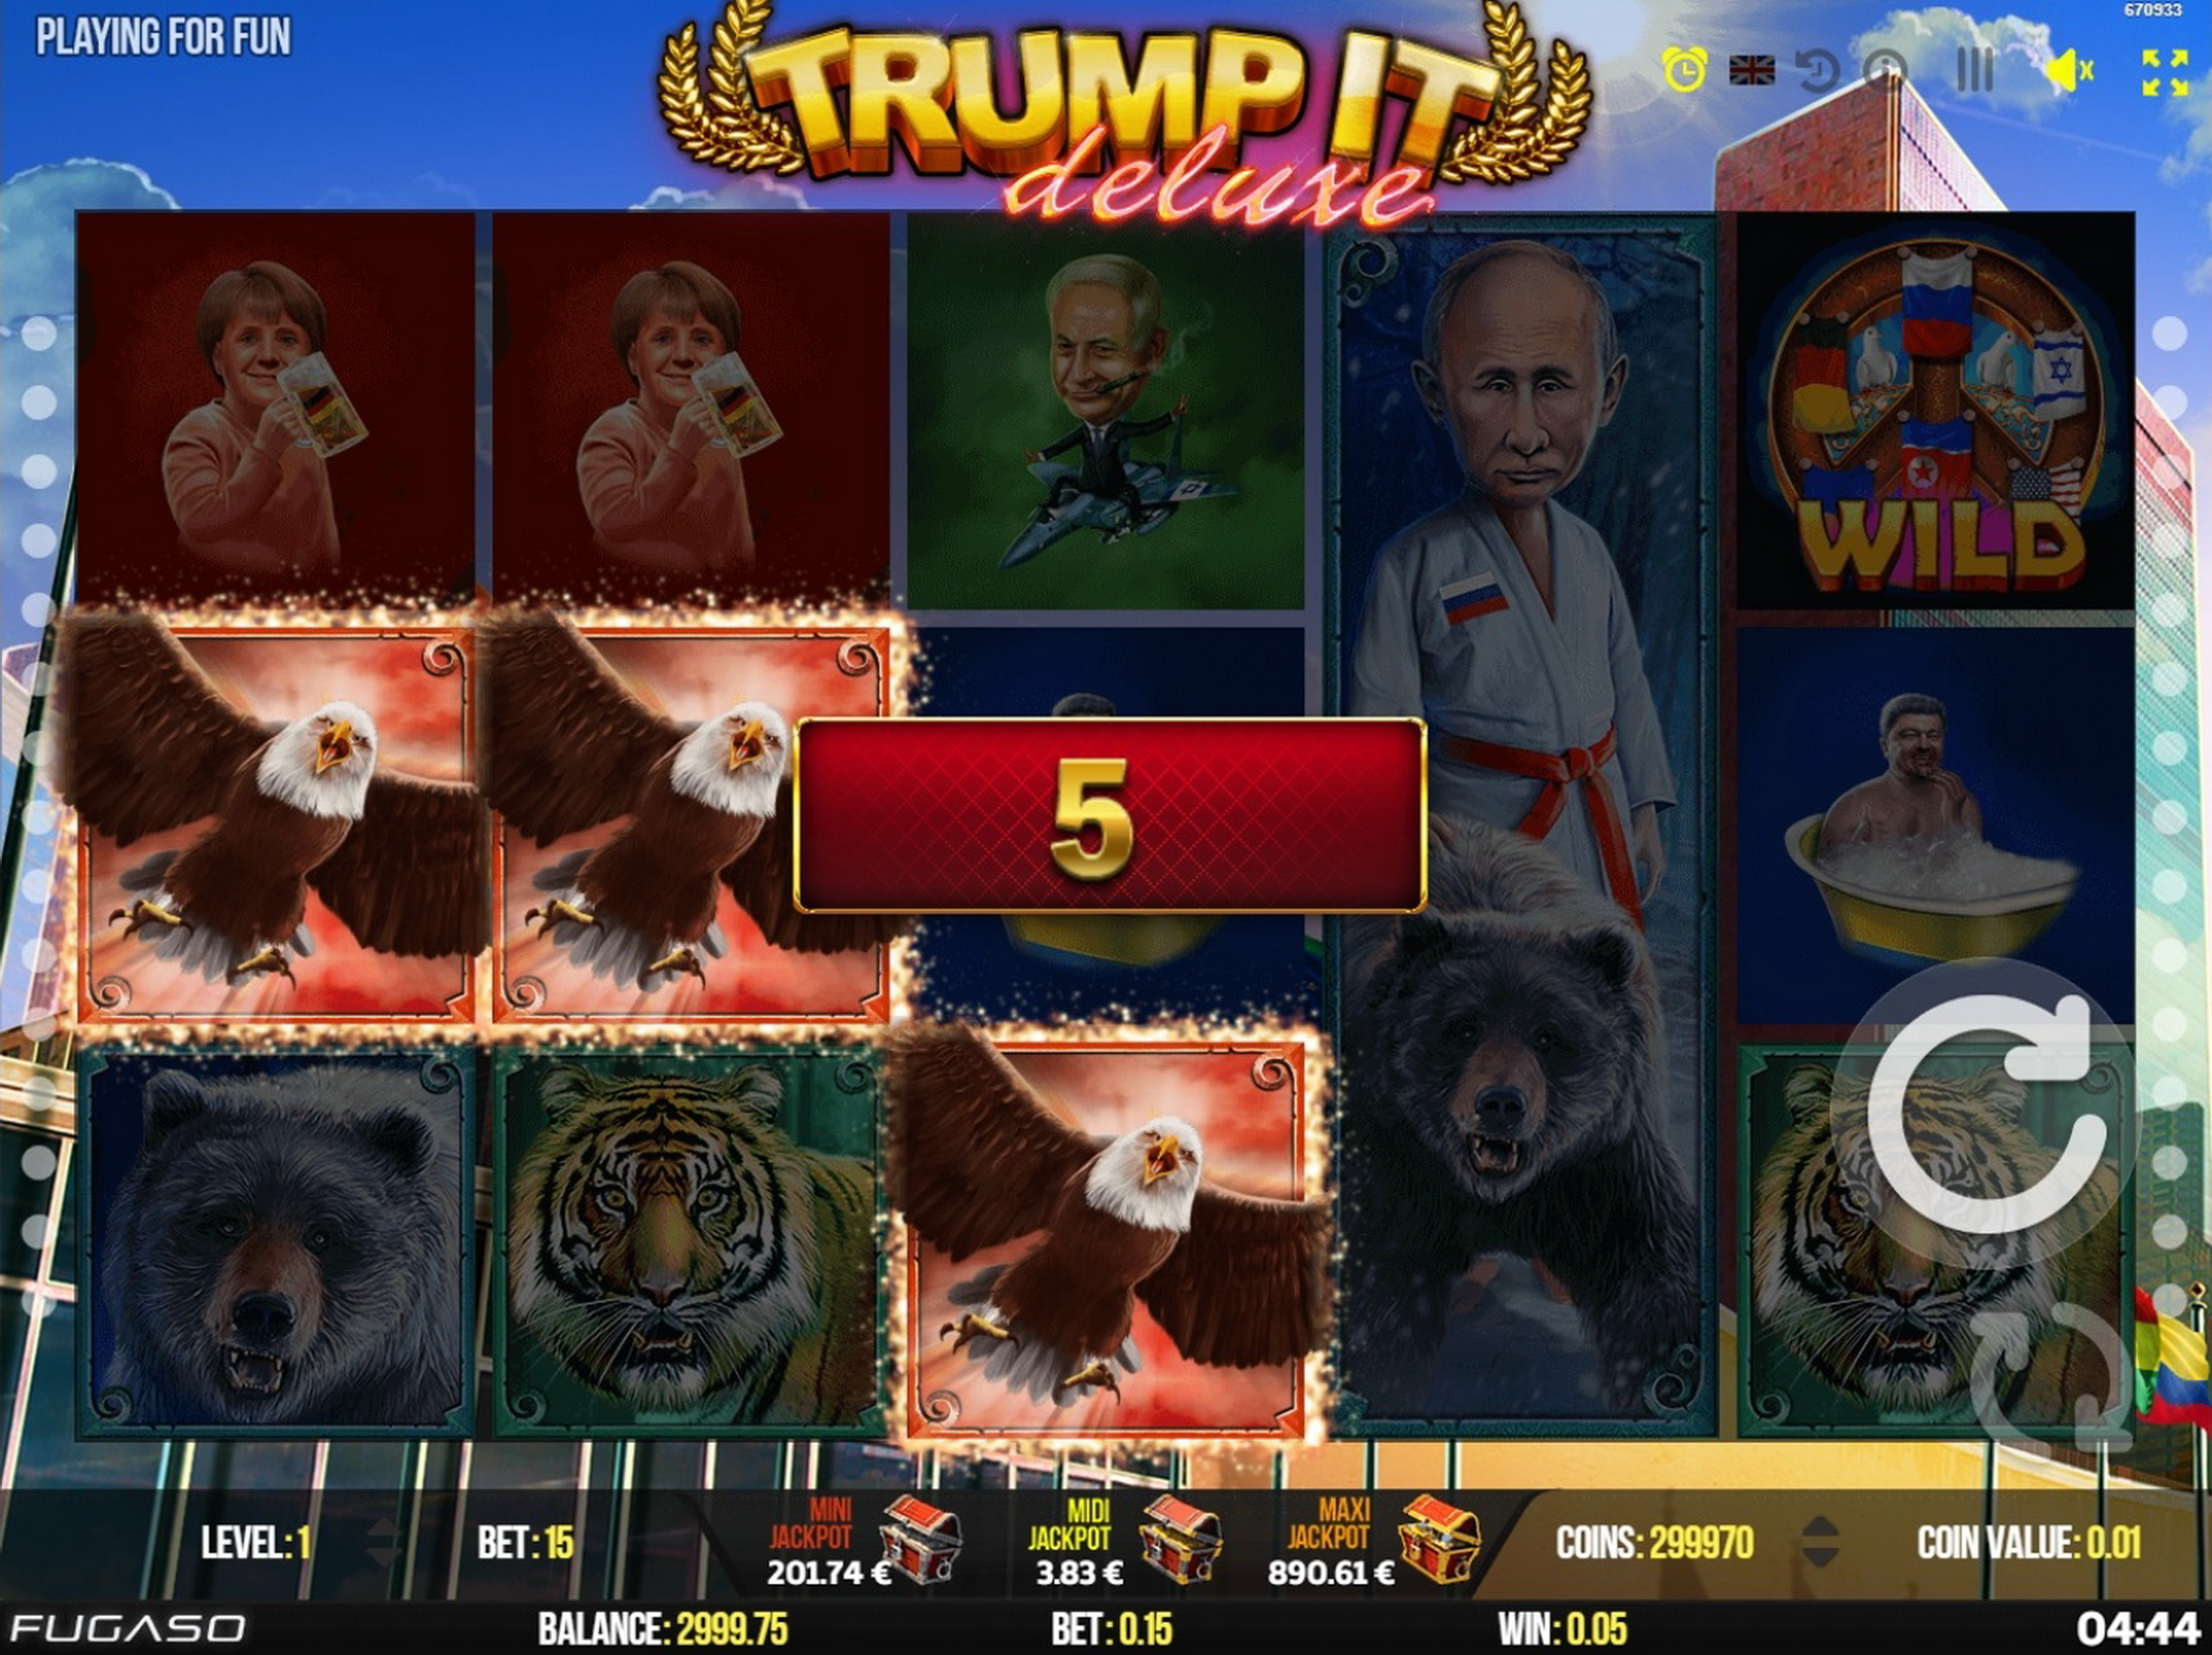 Win Money in Trump It Deluxe Free Slot Game by Fugaso